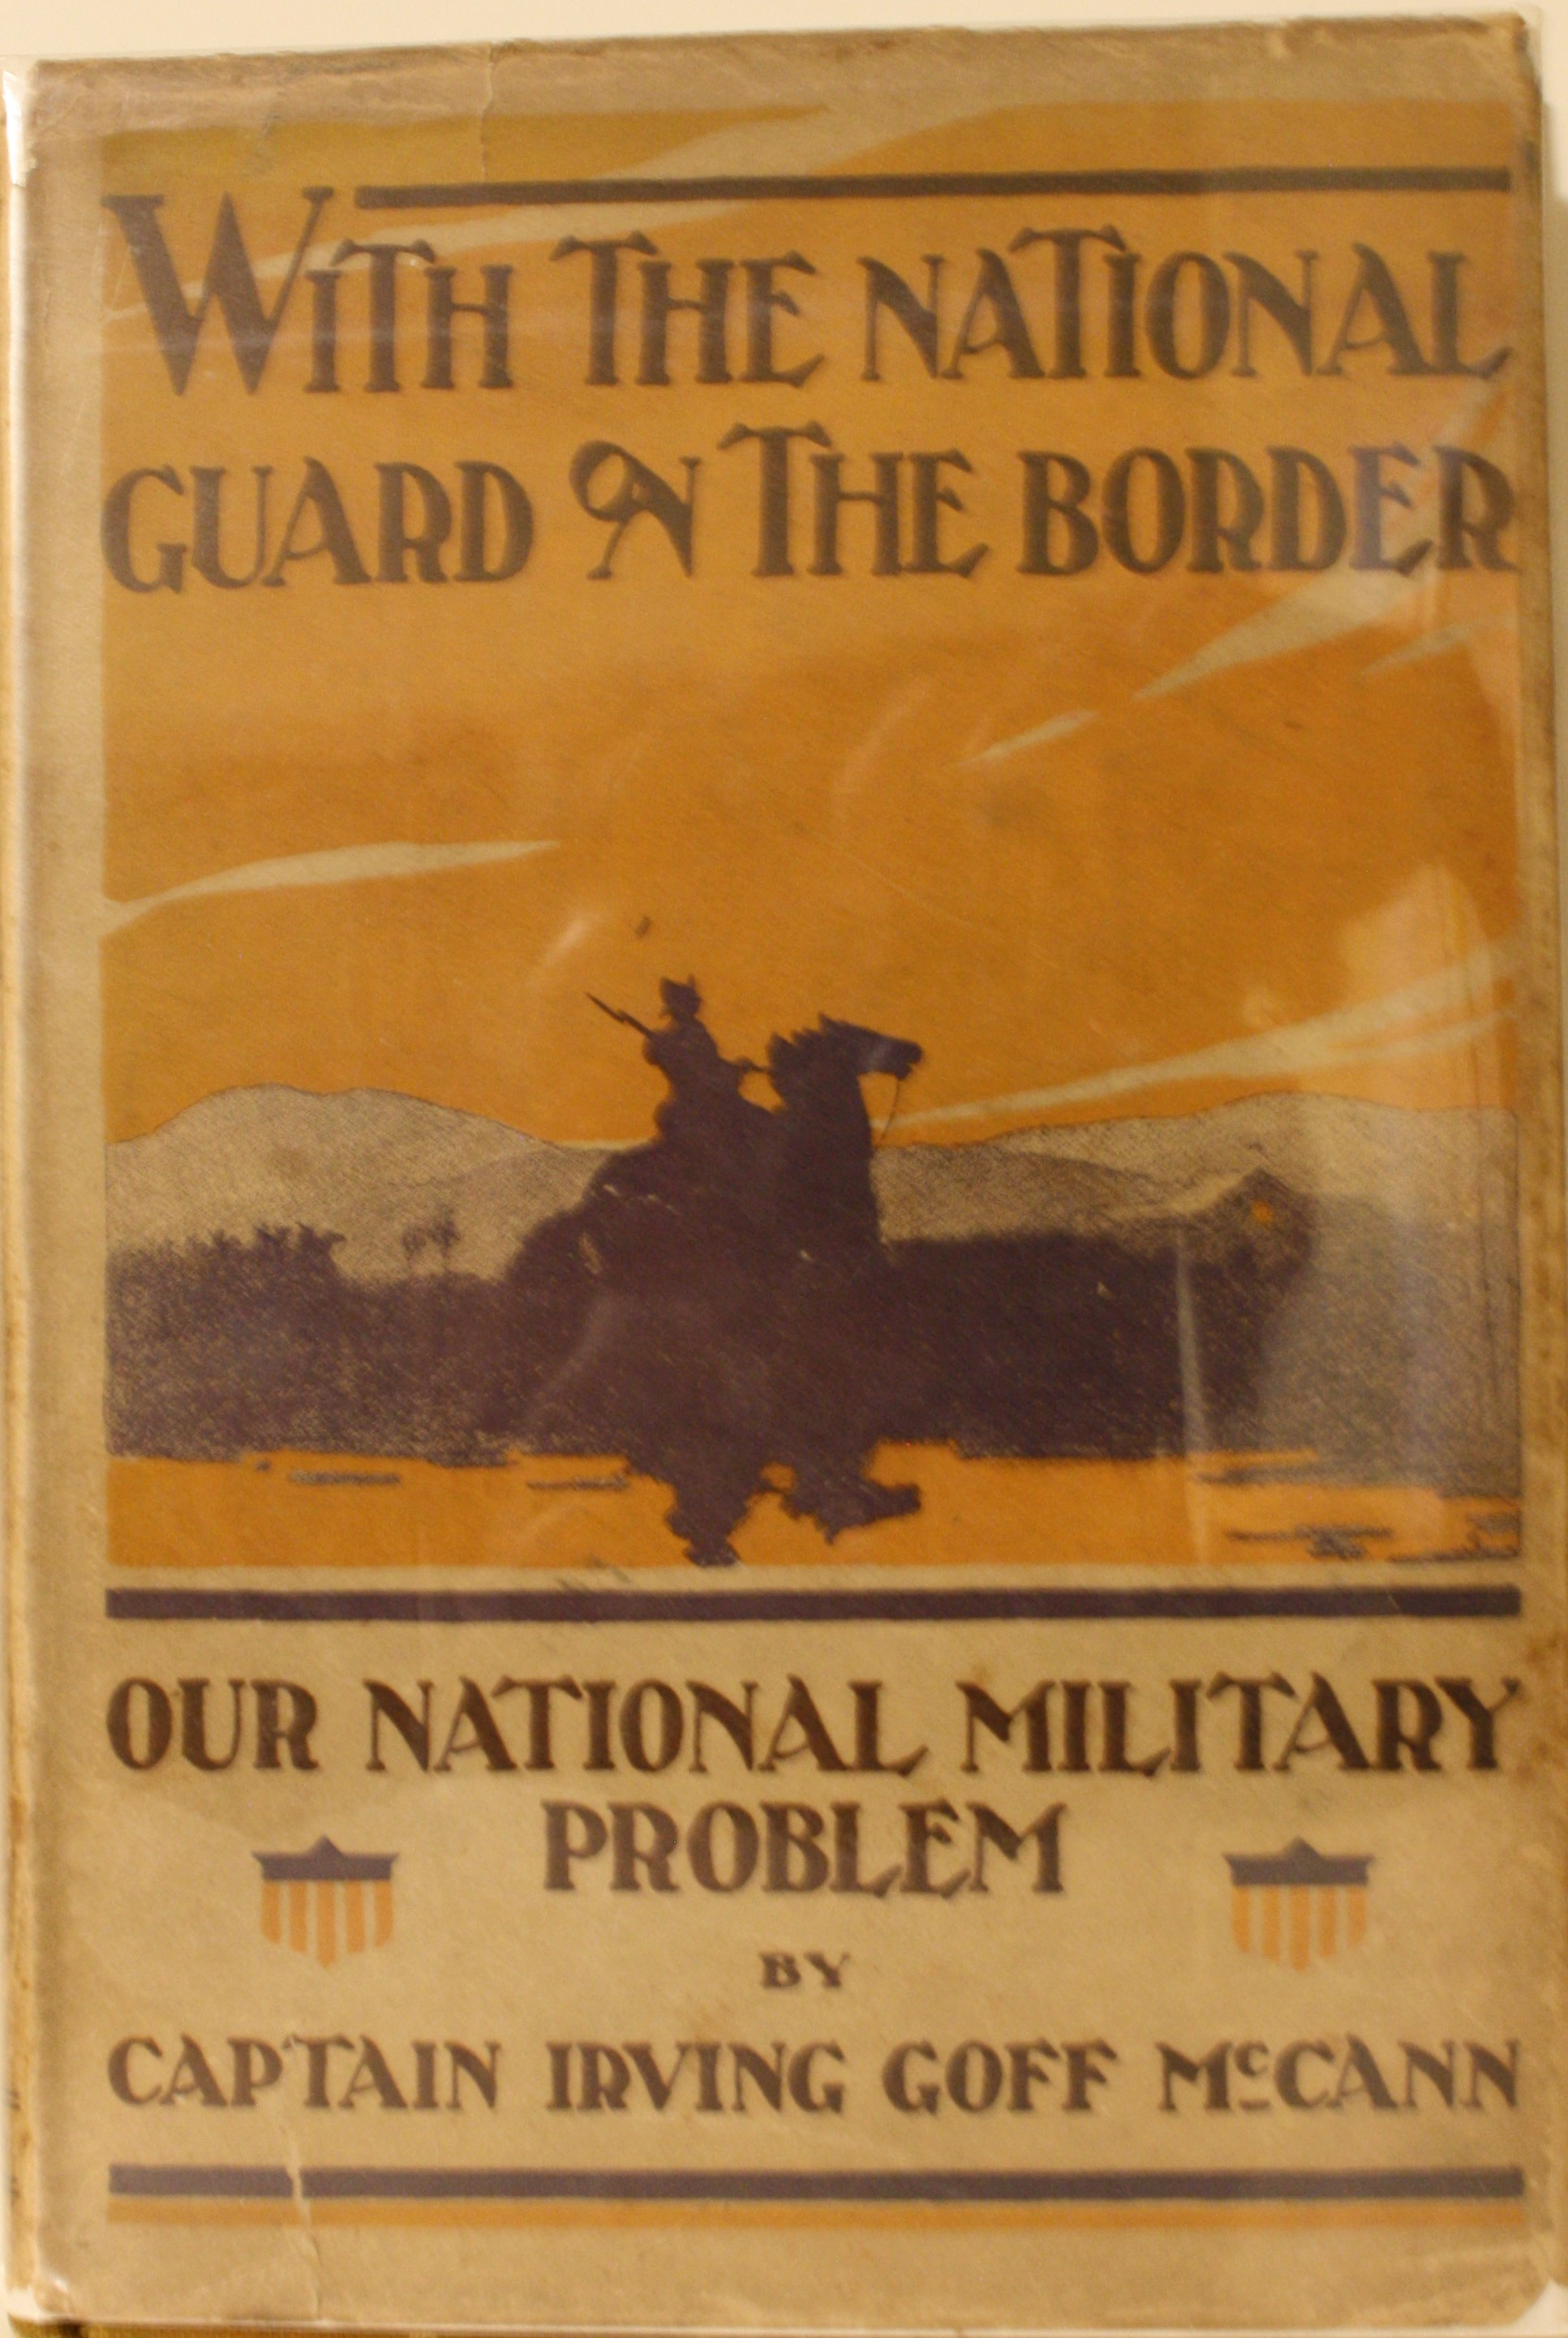 Image for With The National Guard On The Border Our National Military Problem Illustrated